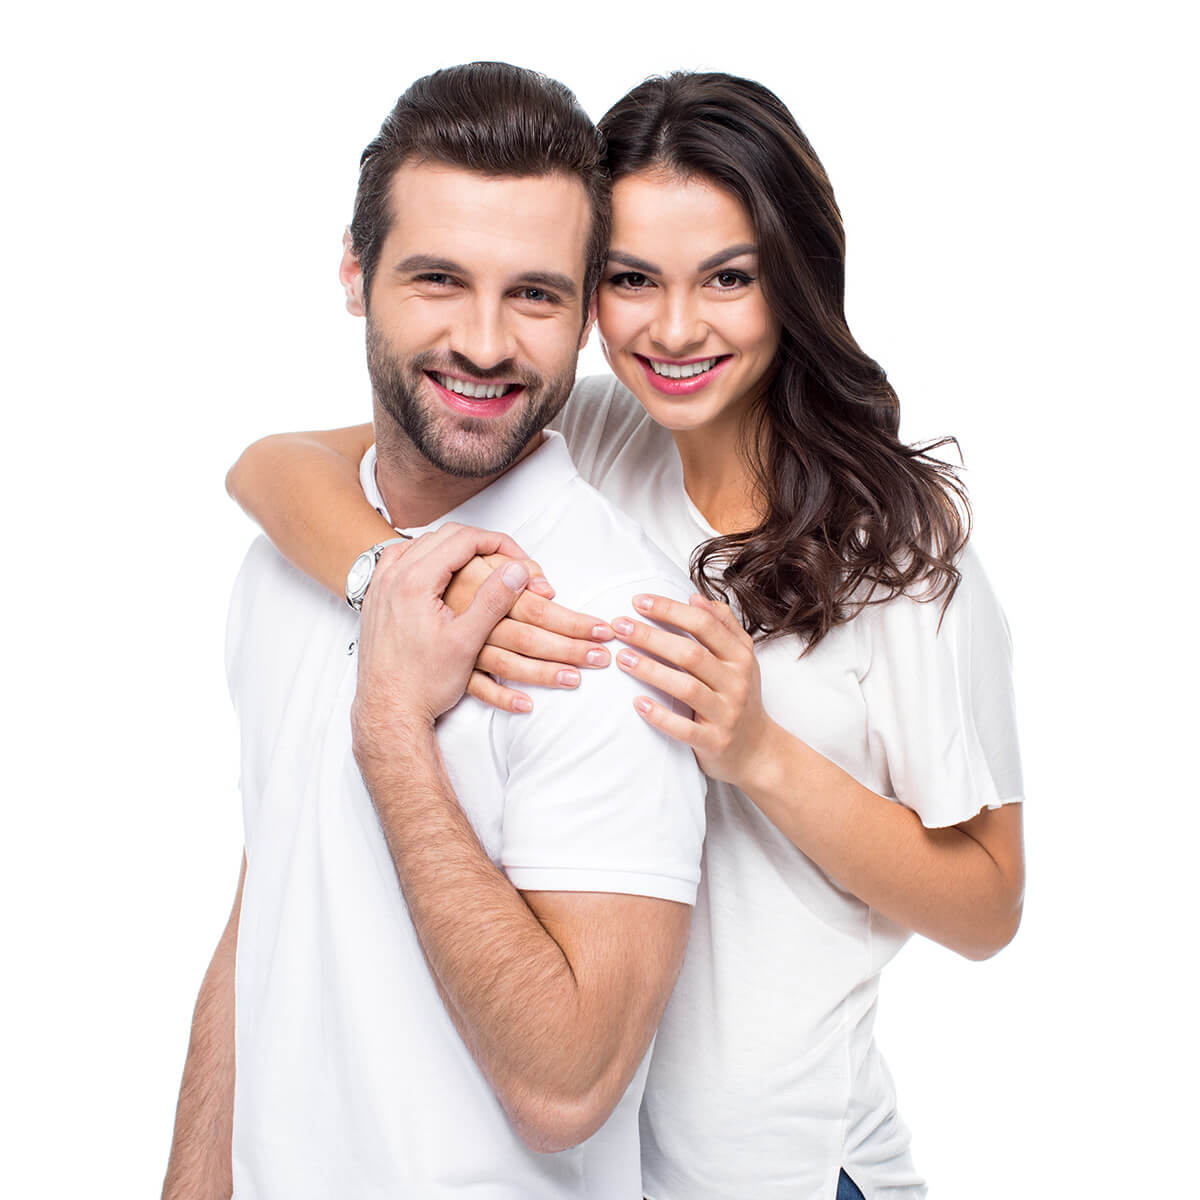 Cost of Treating Men's Low T in Frisco, Tx Area